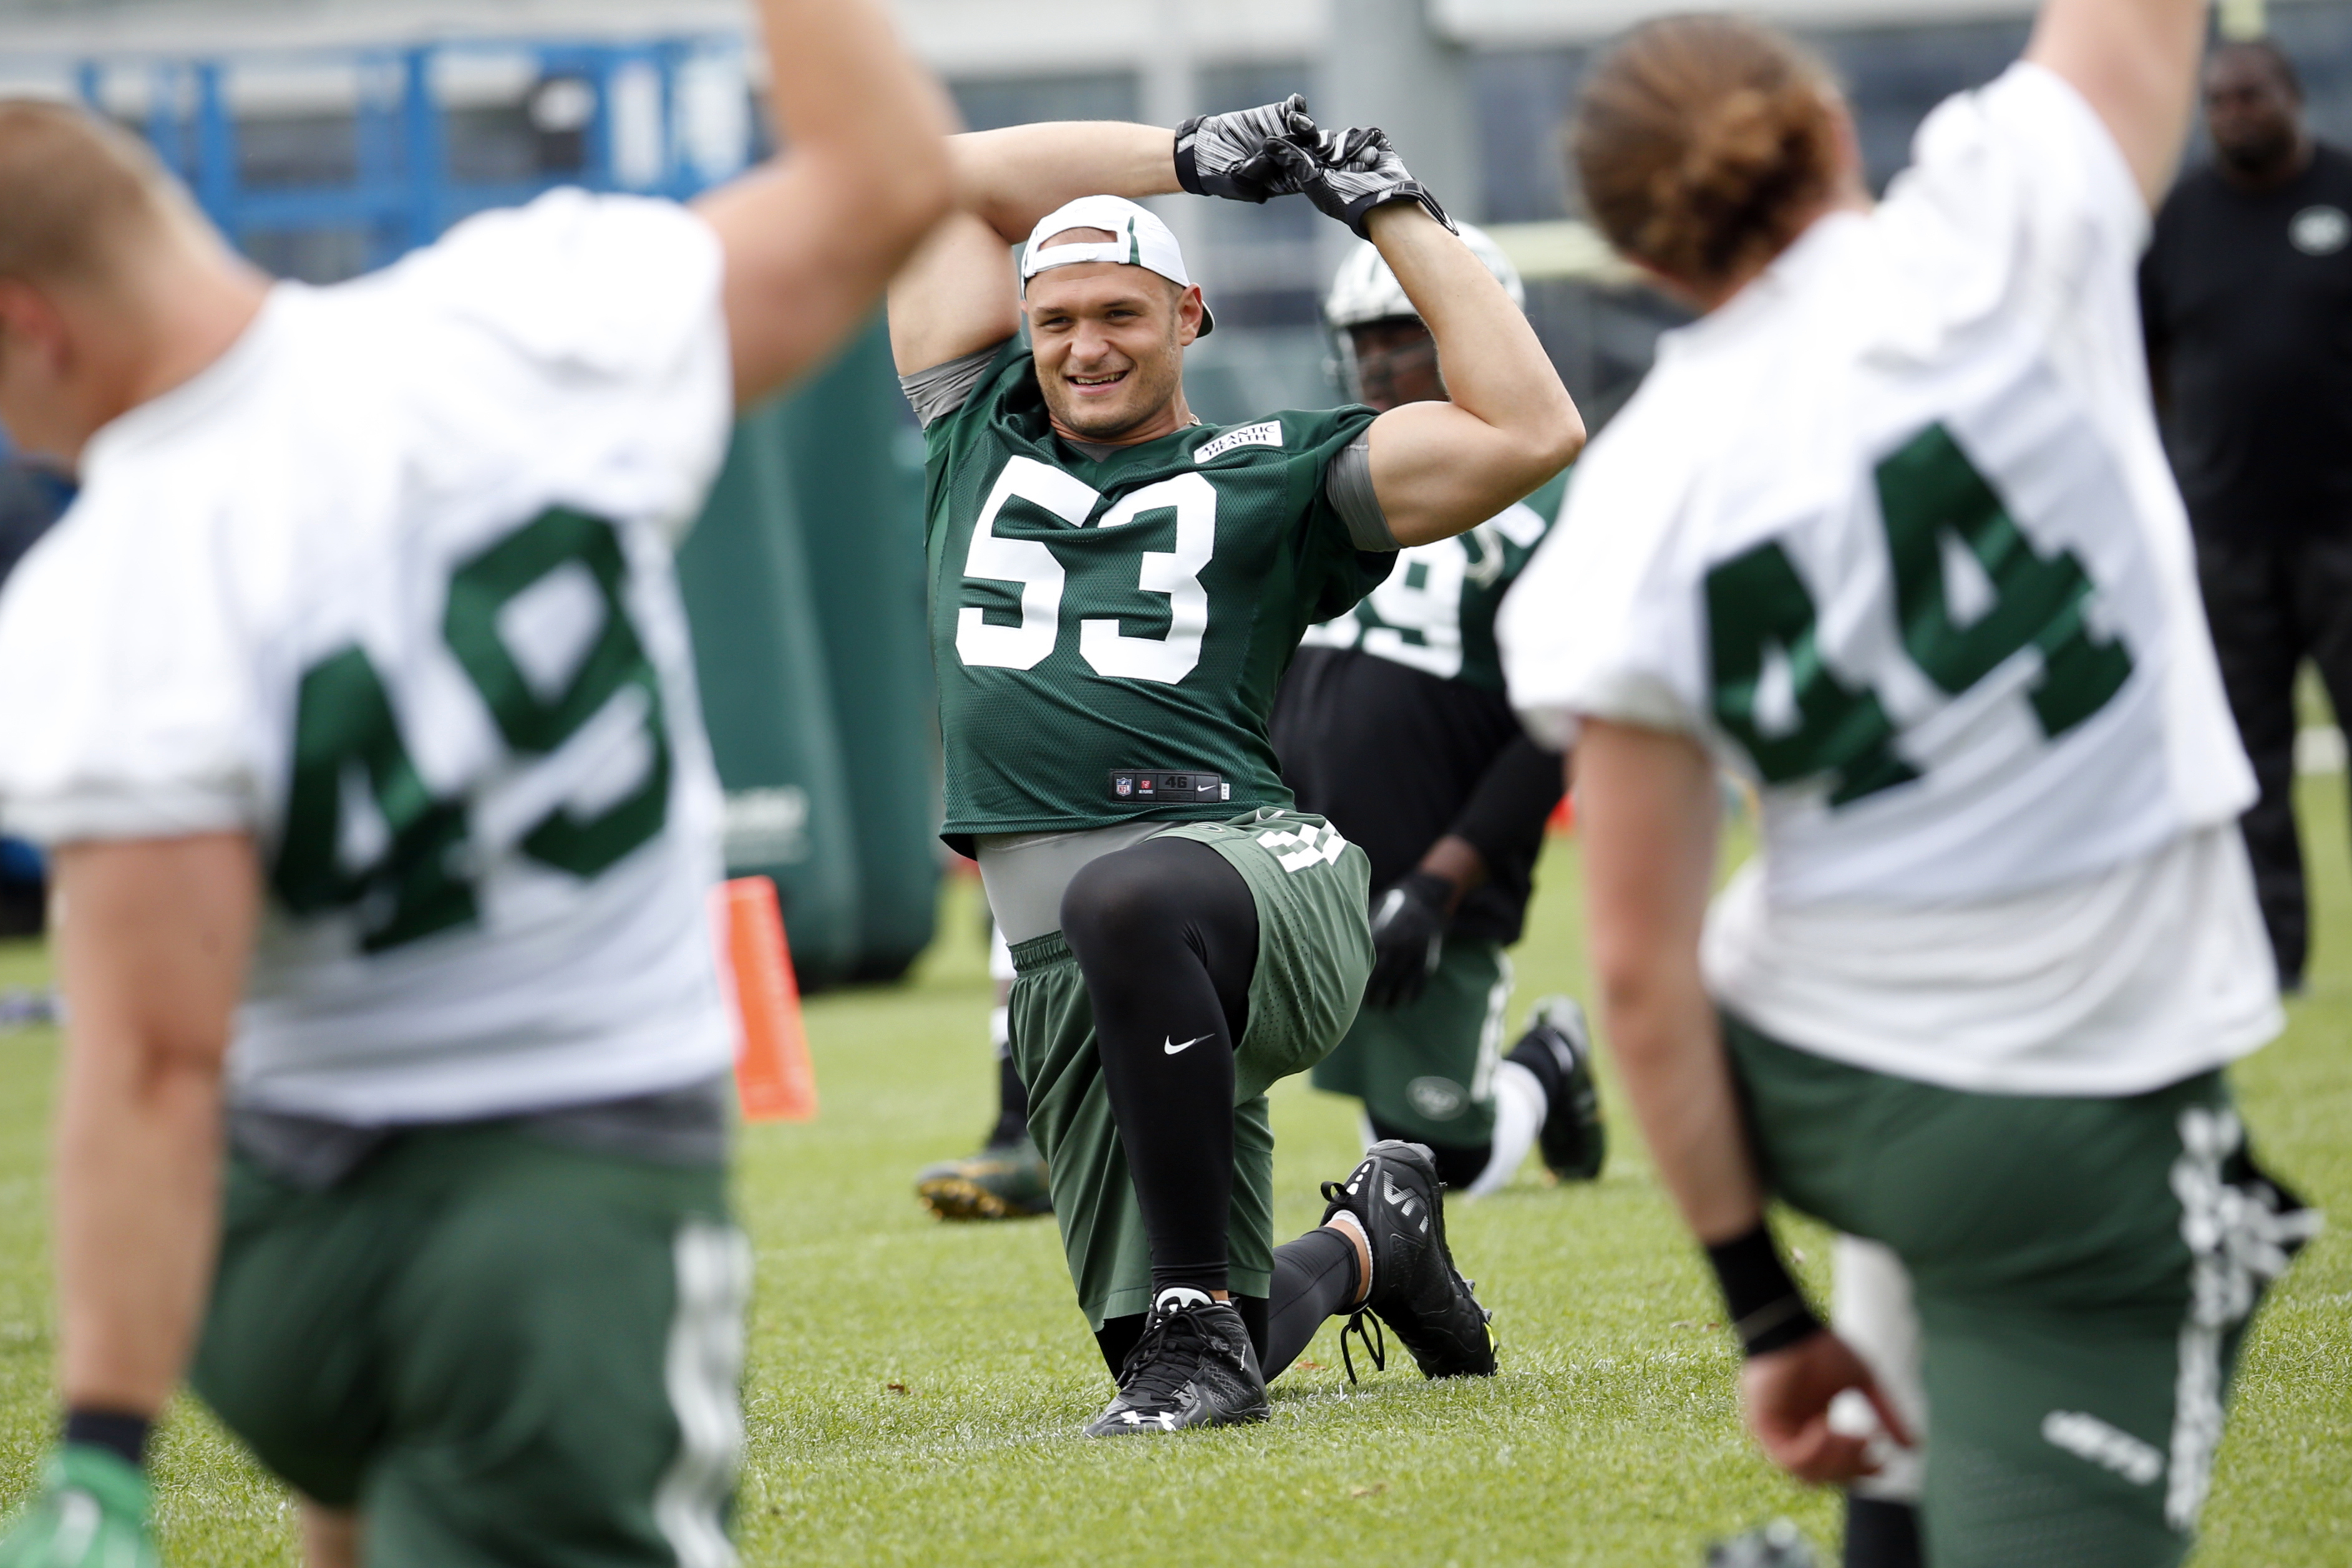 FILE - In this Wednesday, June 8, 2016 photo, New York Jets defensive end Mike Catapano stretches during NFL football practice in Florham Park, N.J. New York Jets' Mike Catapano, a New Yorker, vividly recalls 9/11 attacks. On the 15-year anniversary of th